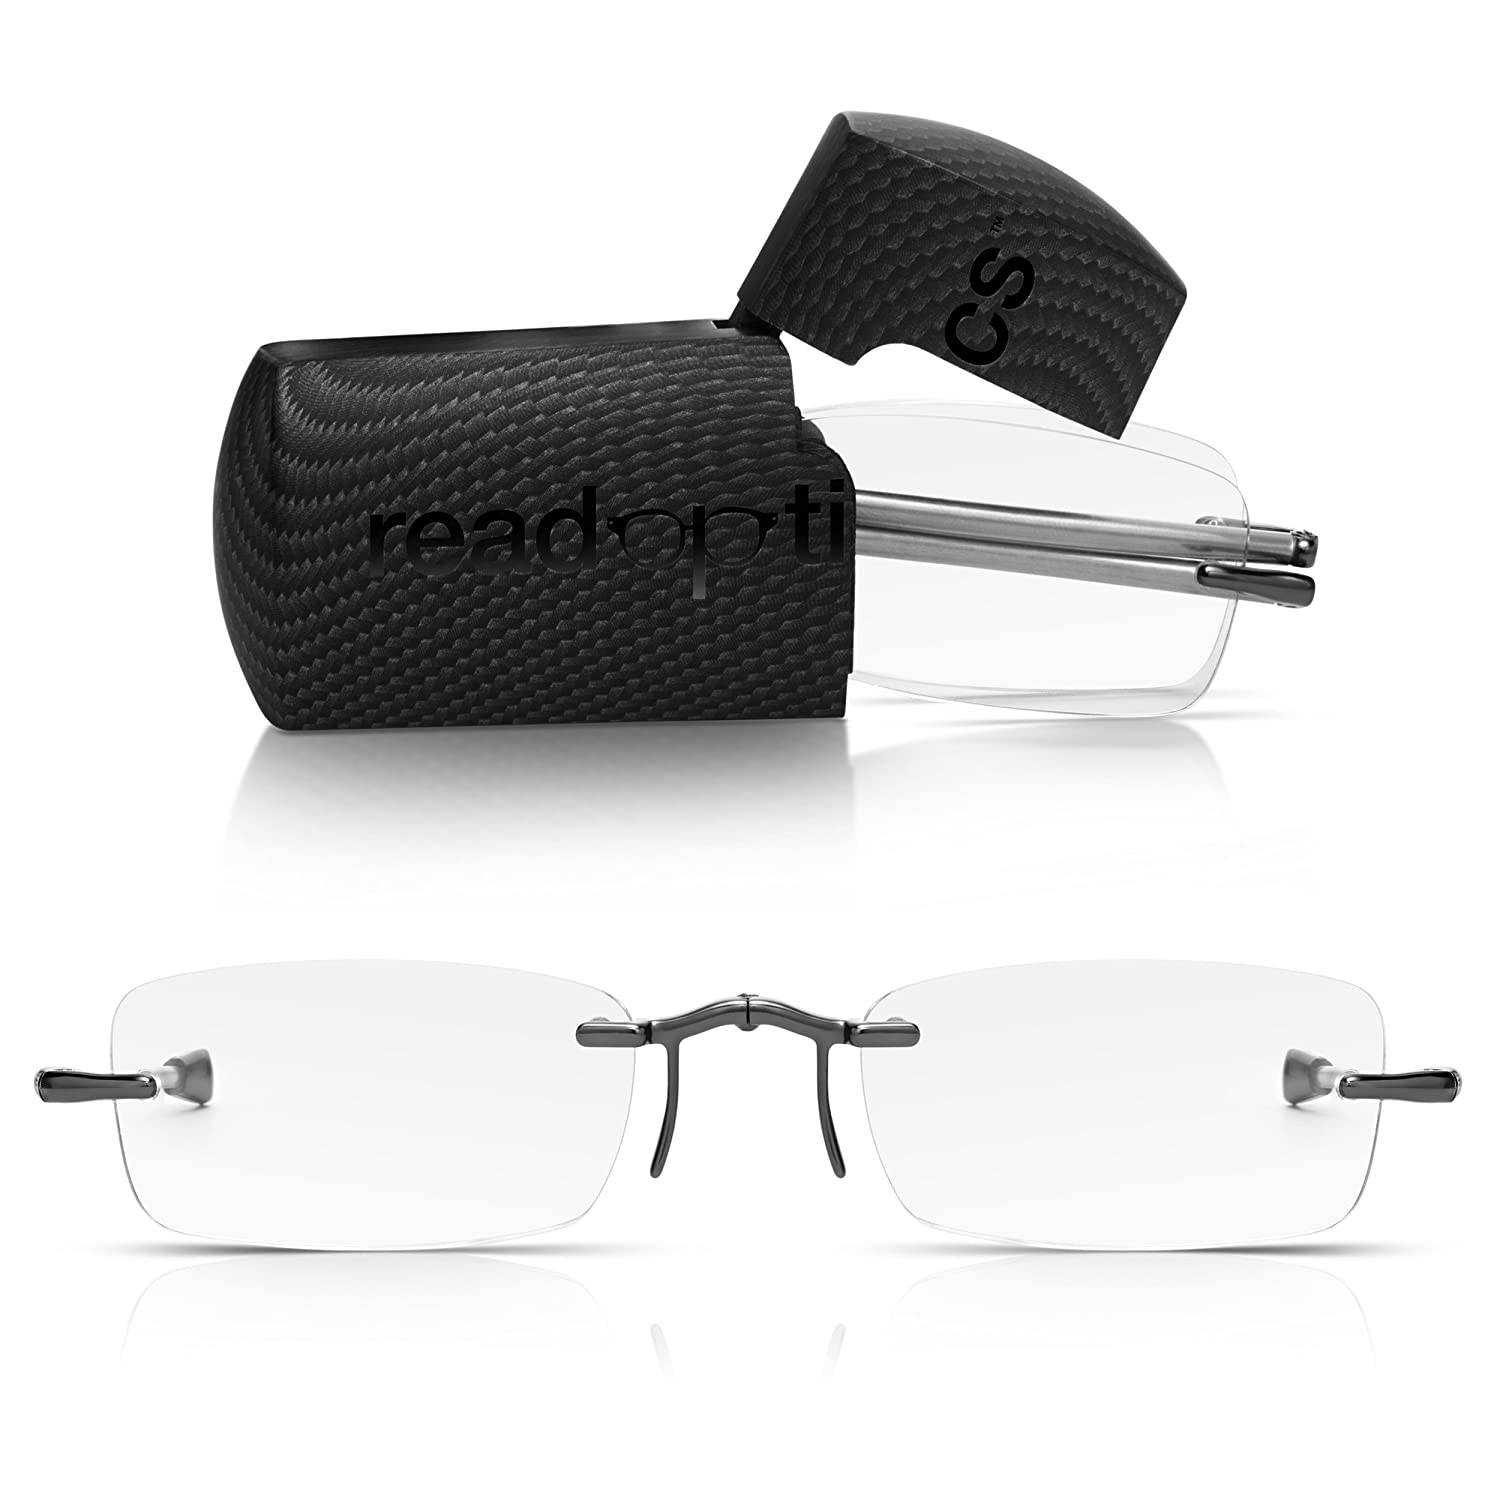 bbb52164cfe4 Read Optics Portable Pocket Reading Glasses +1.0 to +3.5: Patented  Frameless Mens/Womens Folding Travel Readers Spectacles with Collapsing  Telescopic Arms. ...